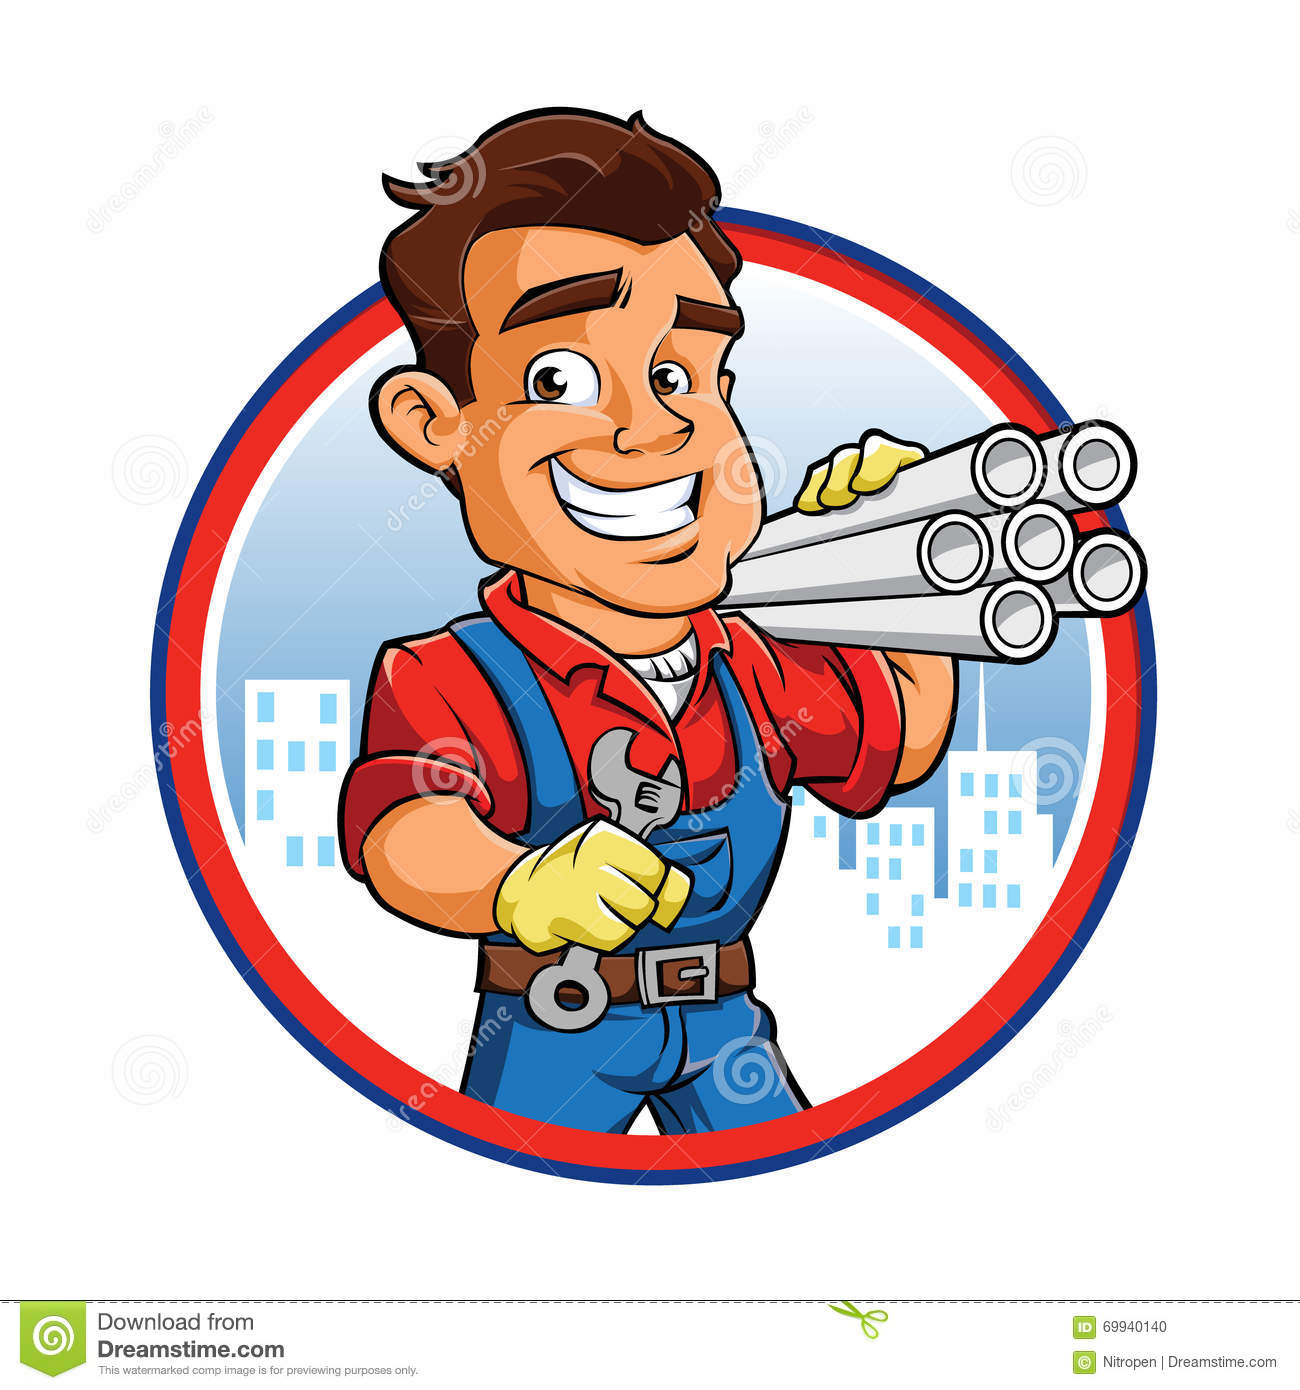 cartoon-plumber-worker-vector-illustration-69940140.jpg